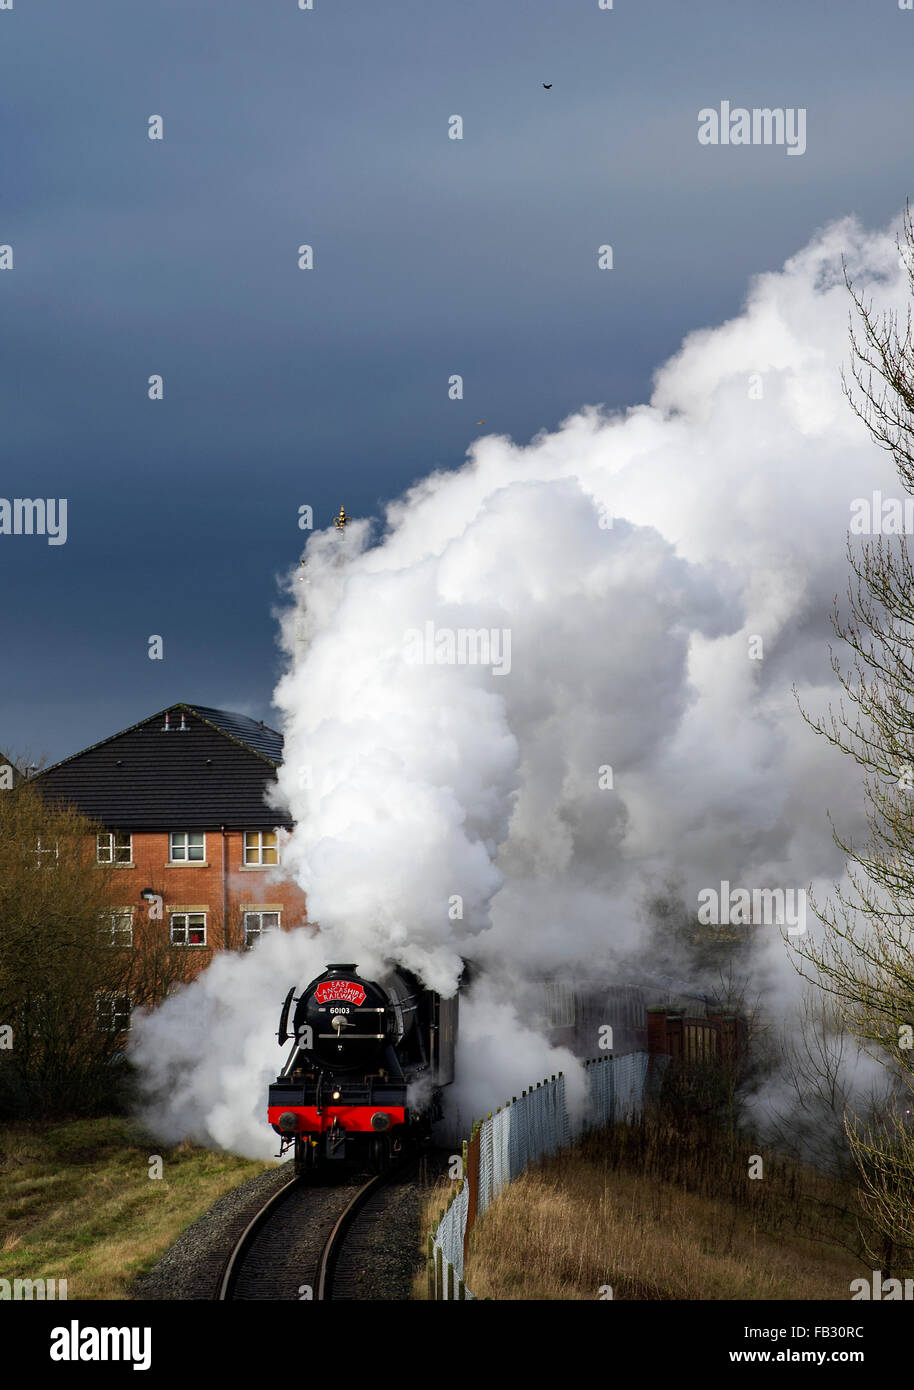 he Flying Scotsman sets off on its first run on the East Lancashire Railway in Bury after 10 years and a £4.2m - Stock Image